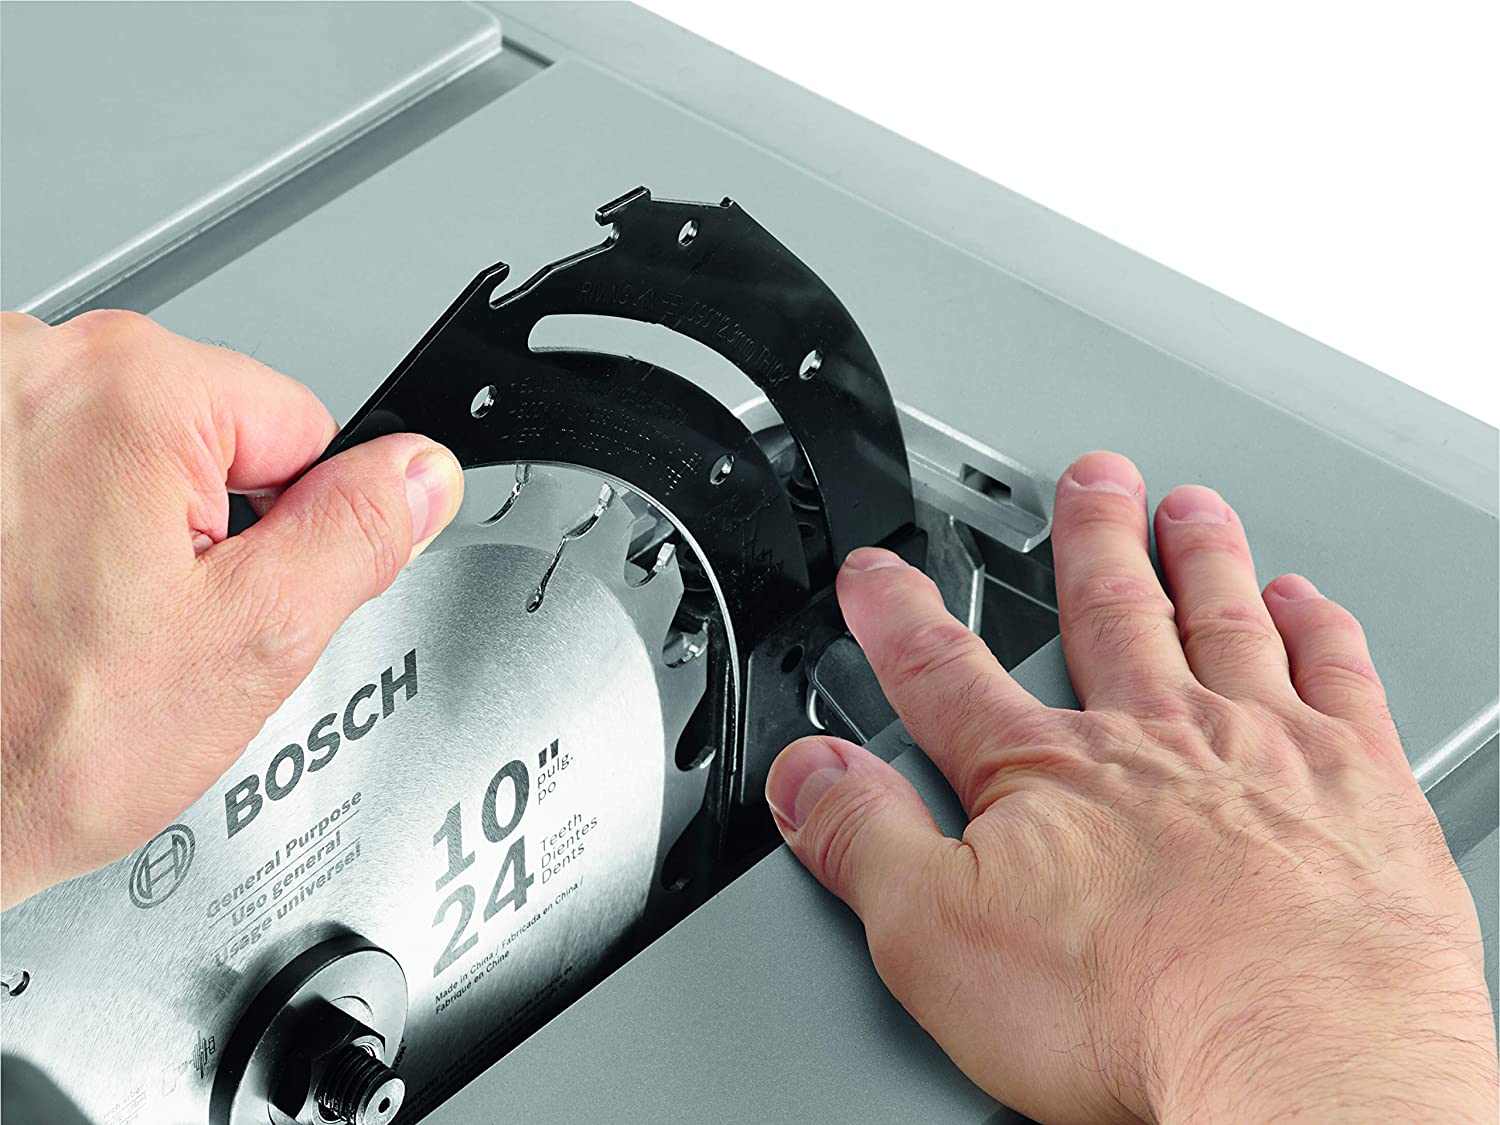 Bosch 4100-10 featured image 14